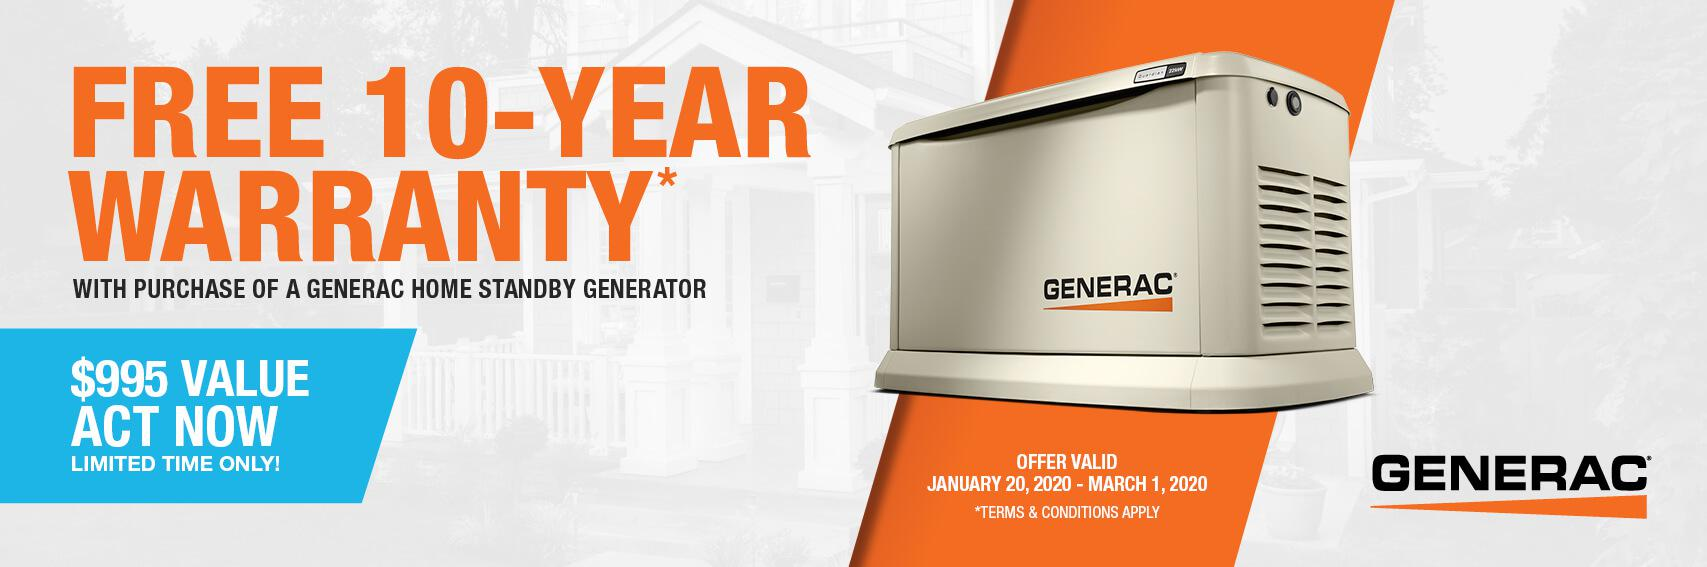 Homestandby Generator Deal | Warranty Offer | Generac Dealer | Mandeville, LA